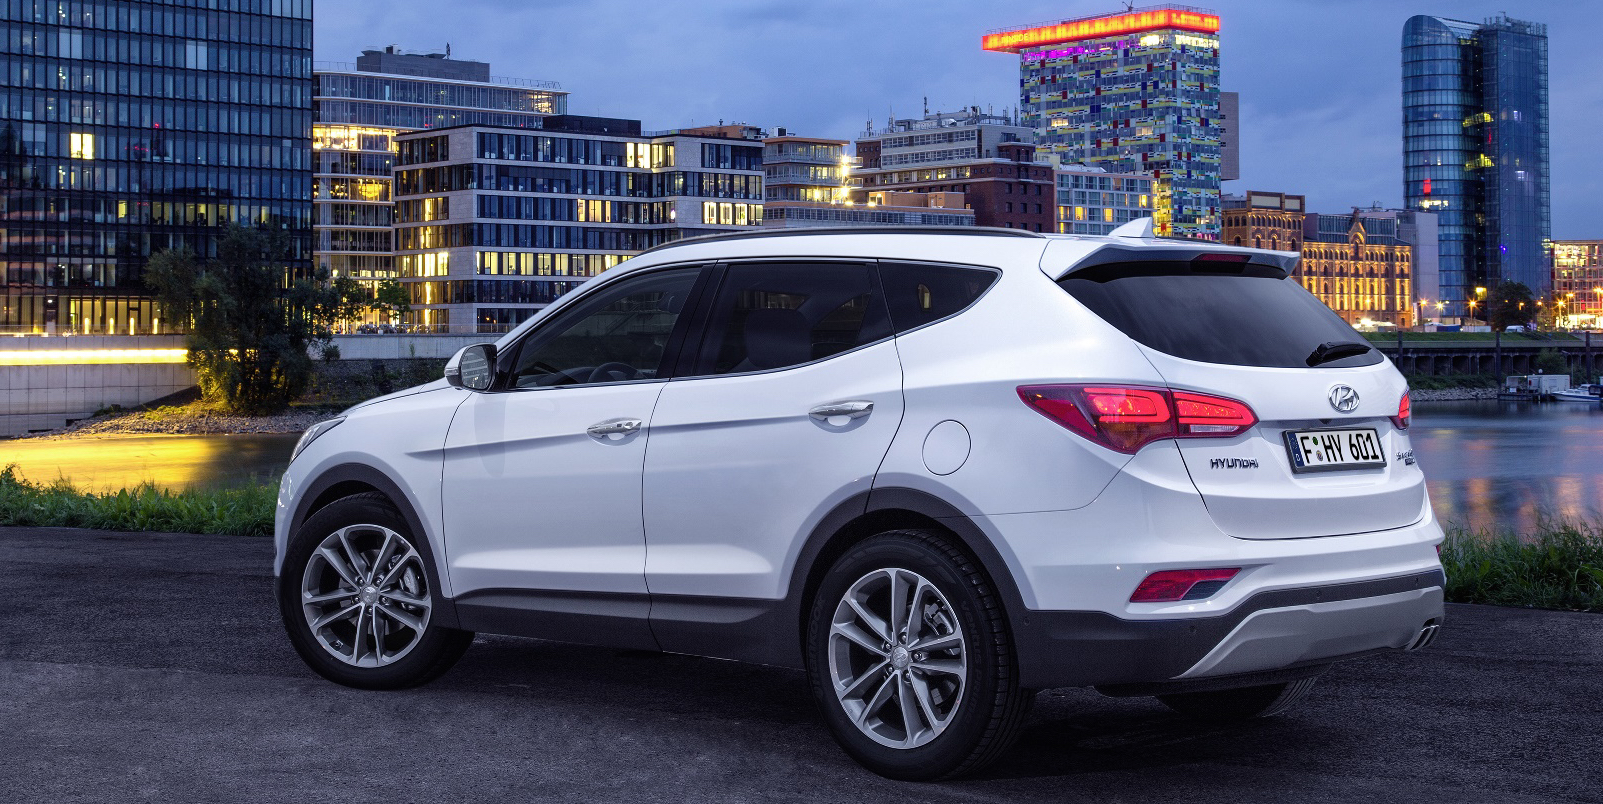 2016 Hyundai Santa Fe Gets New Safety Tech And Design